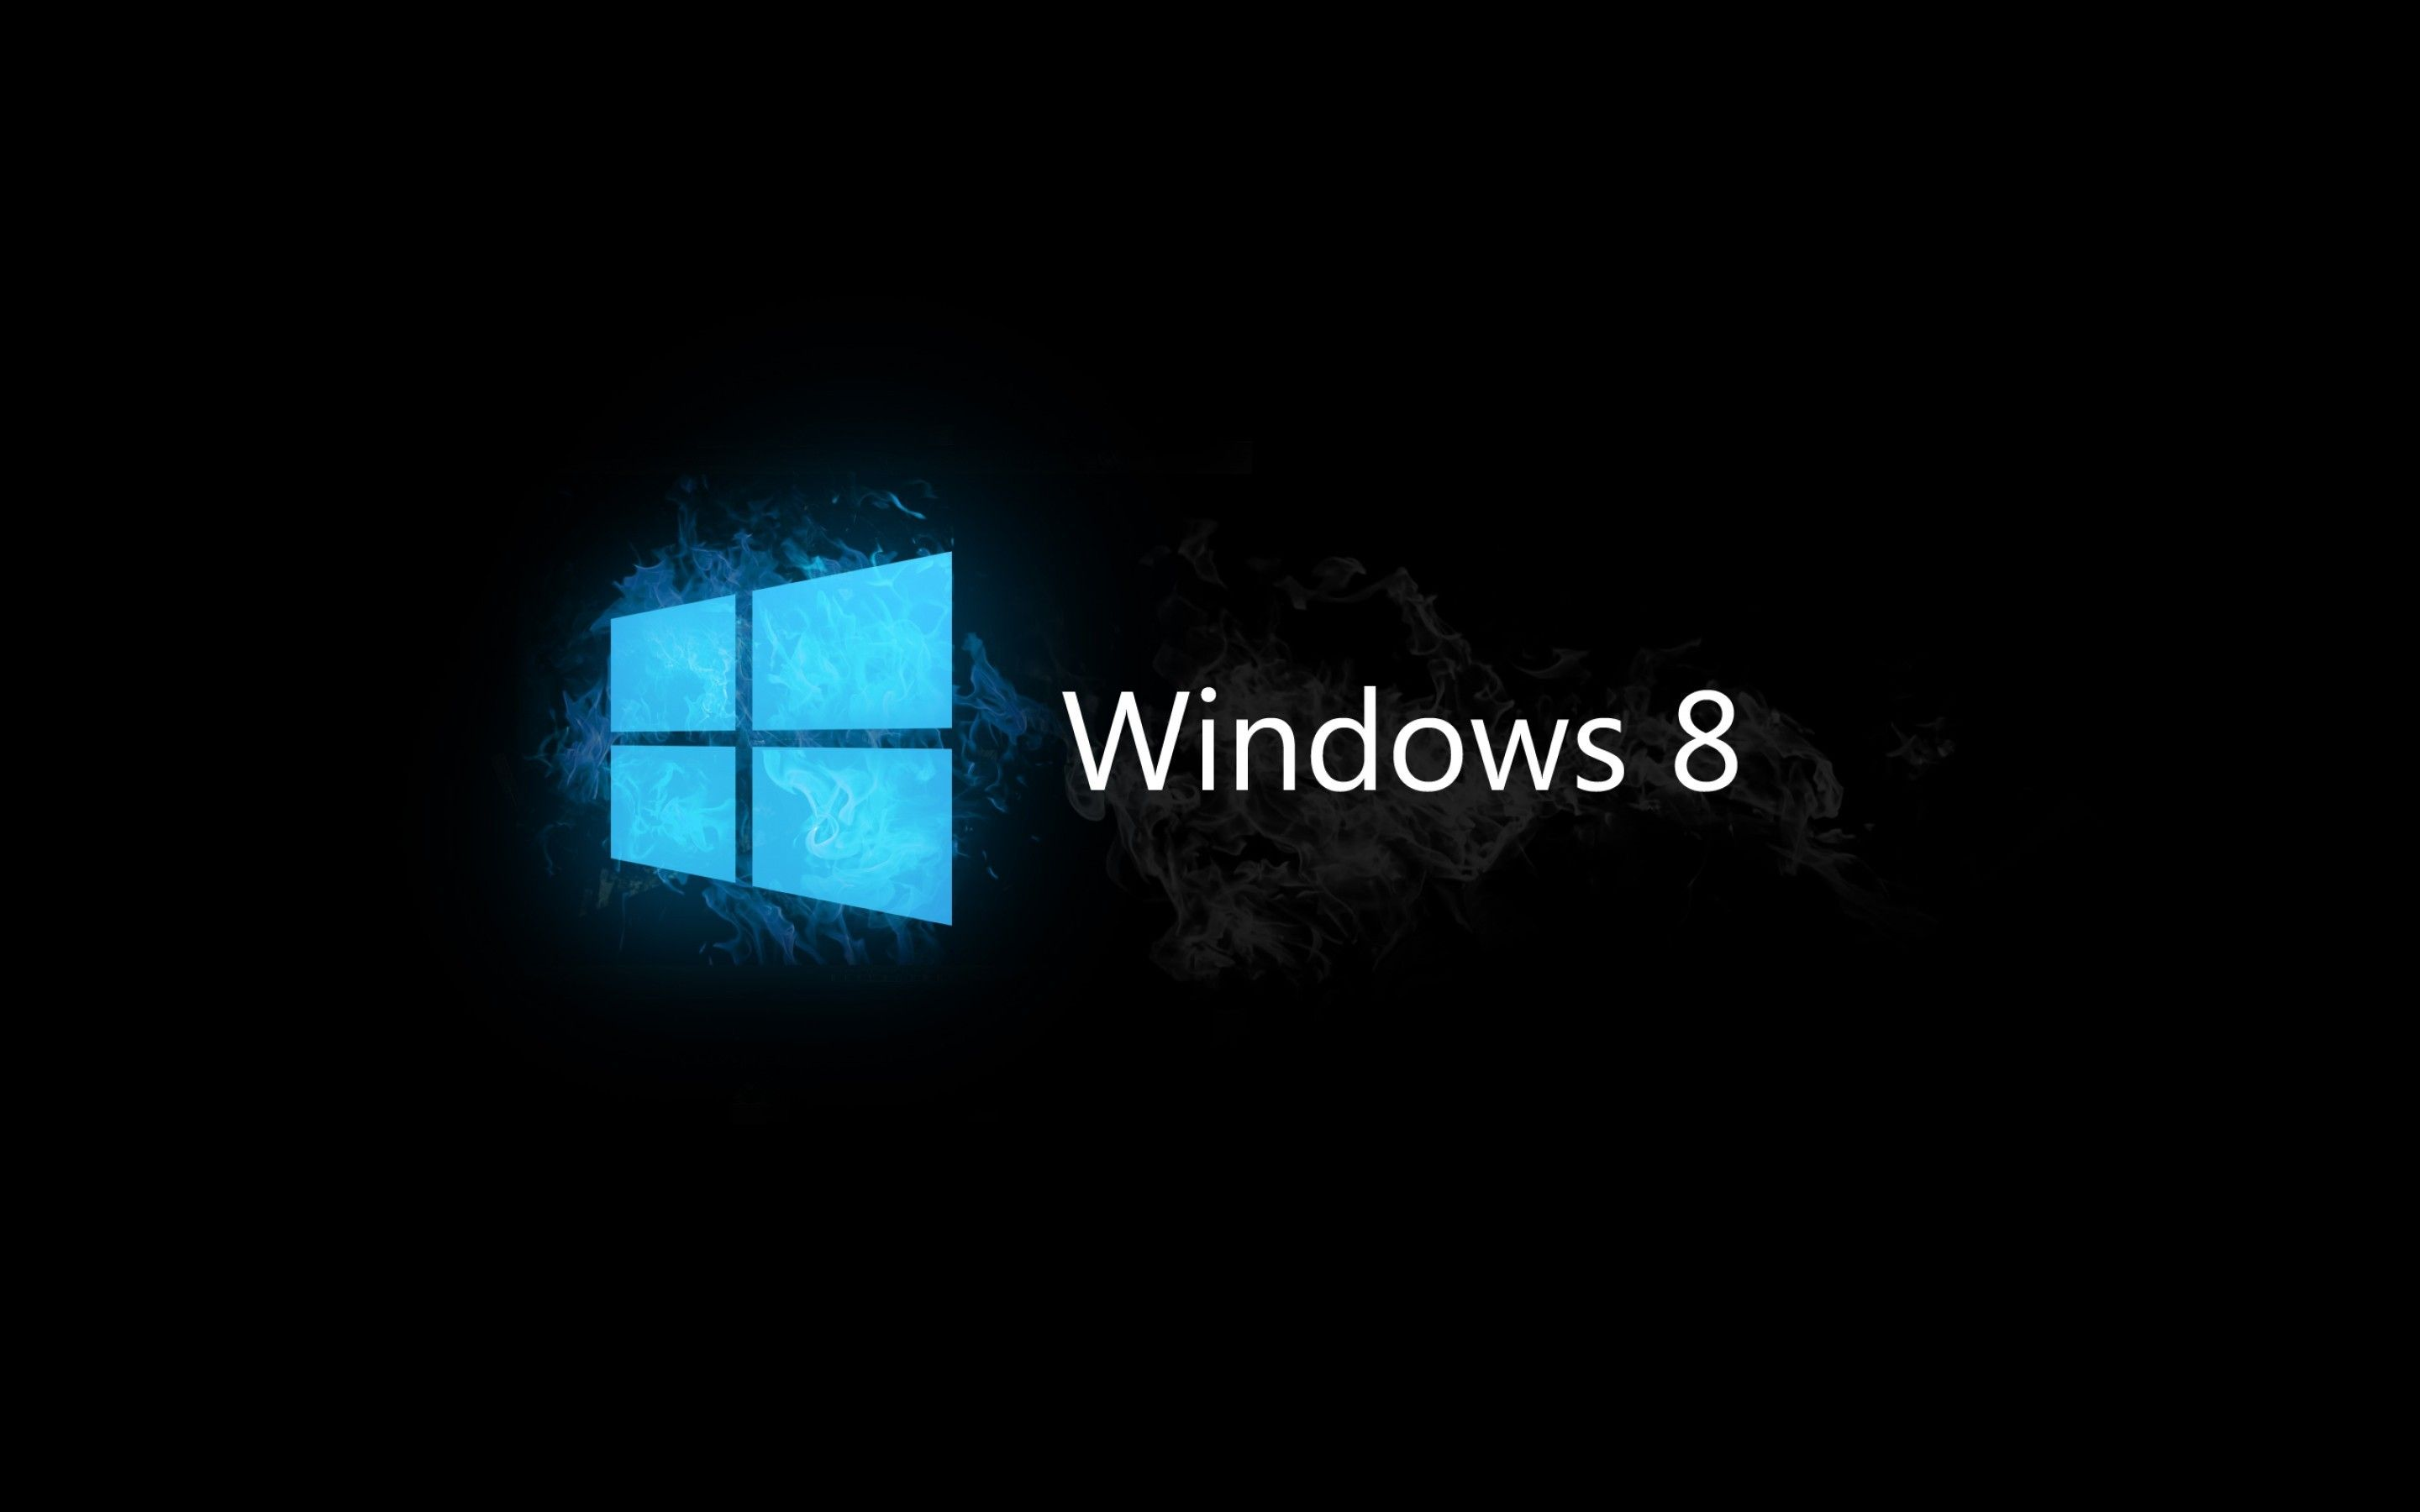 windows 8 wallpaper hd - http://imashon/w/computer-w/windows-8